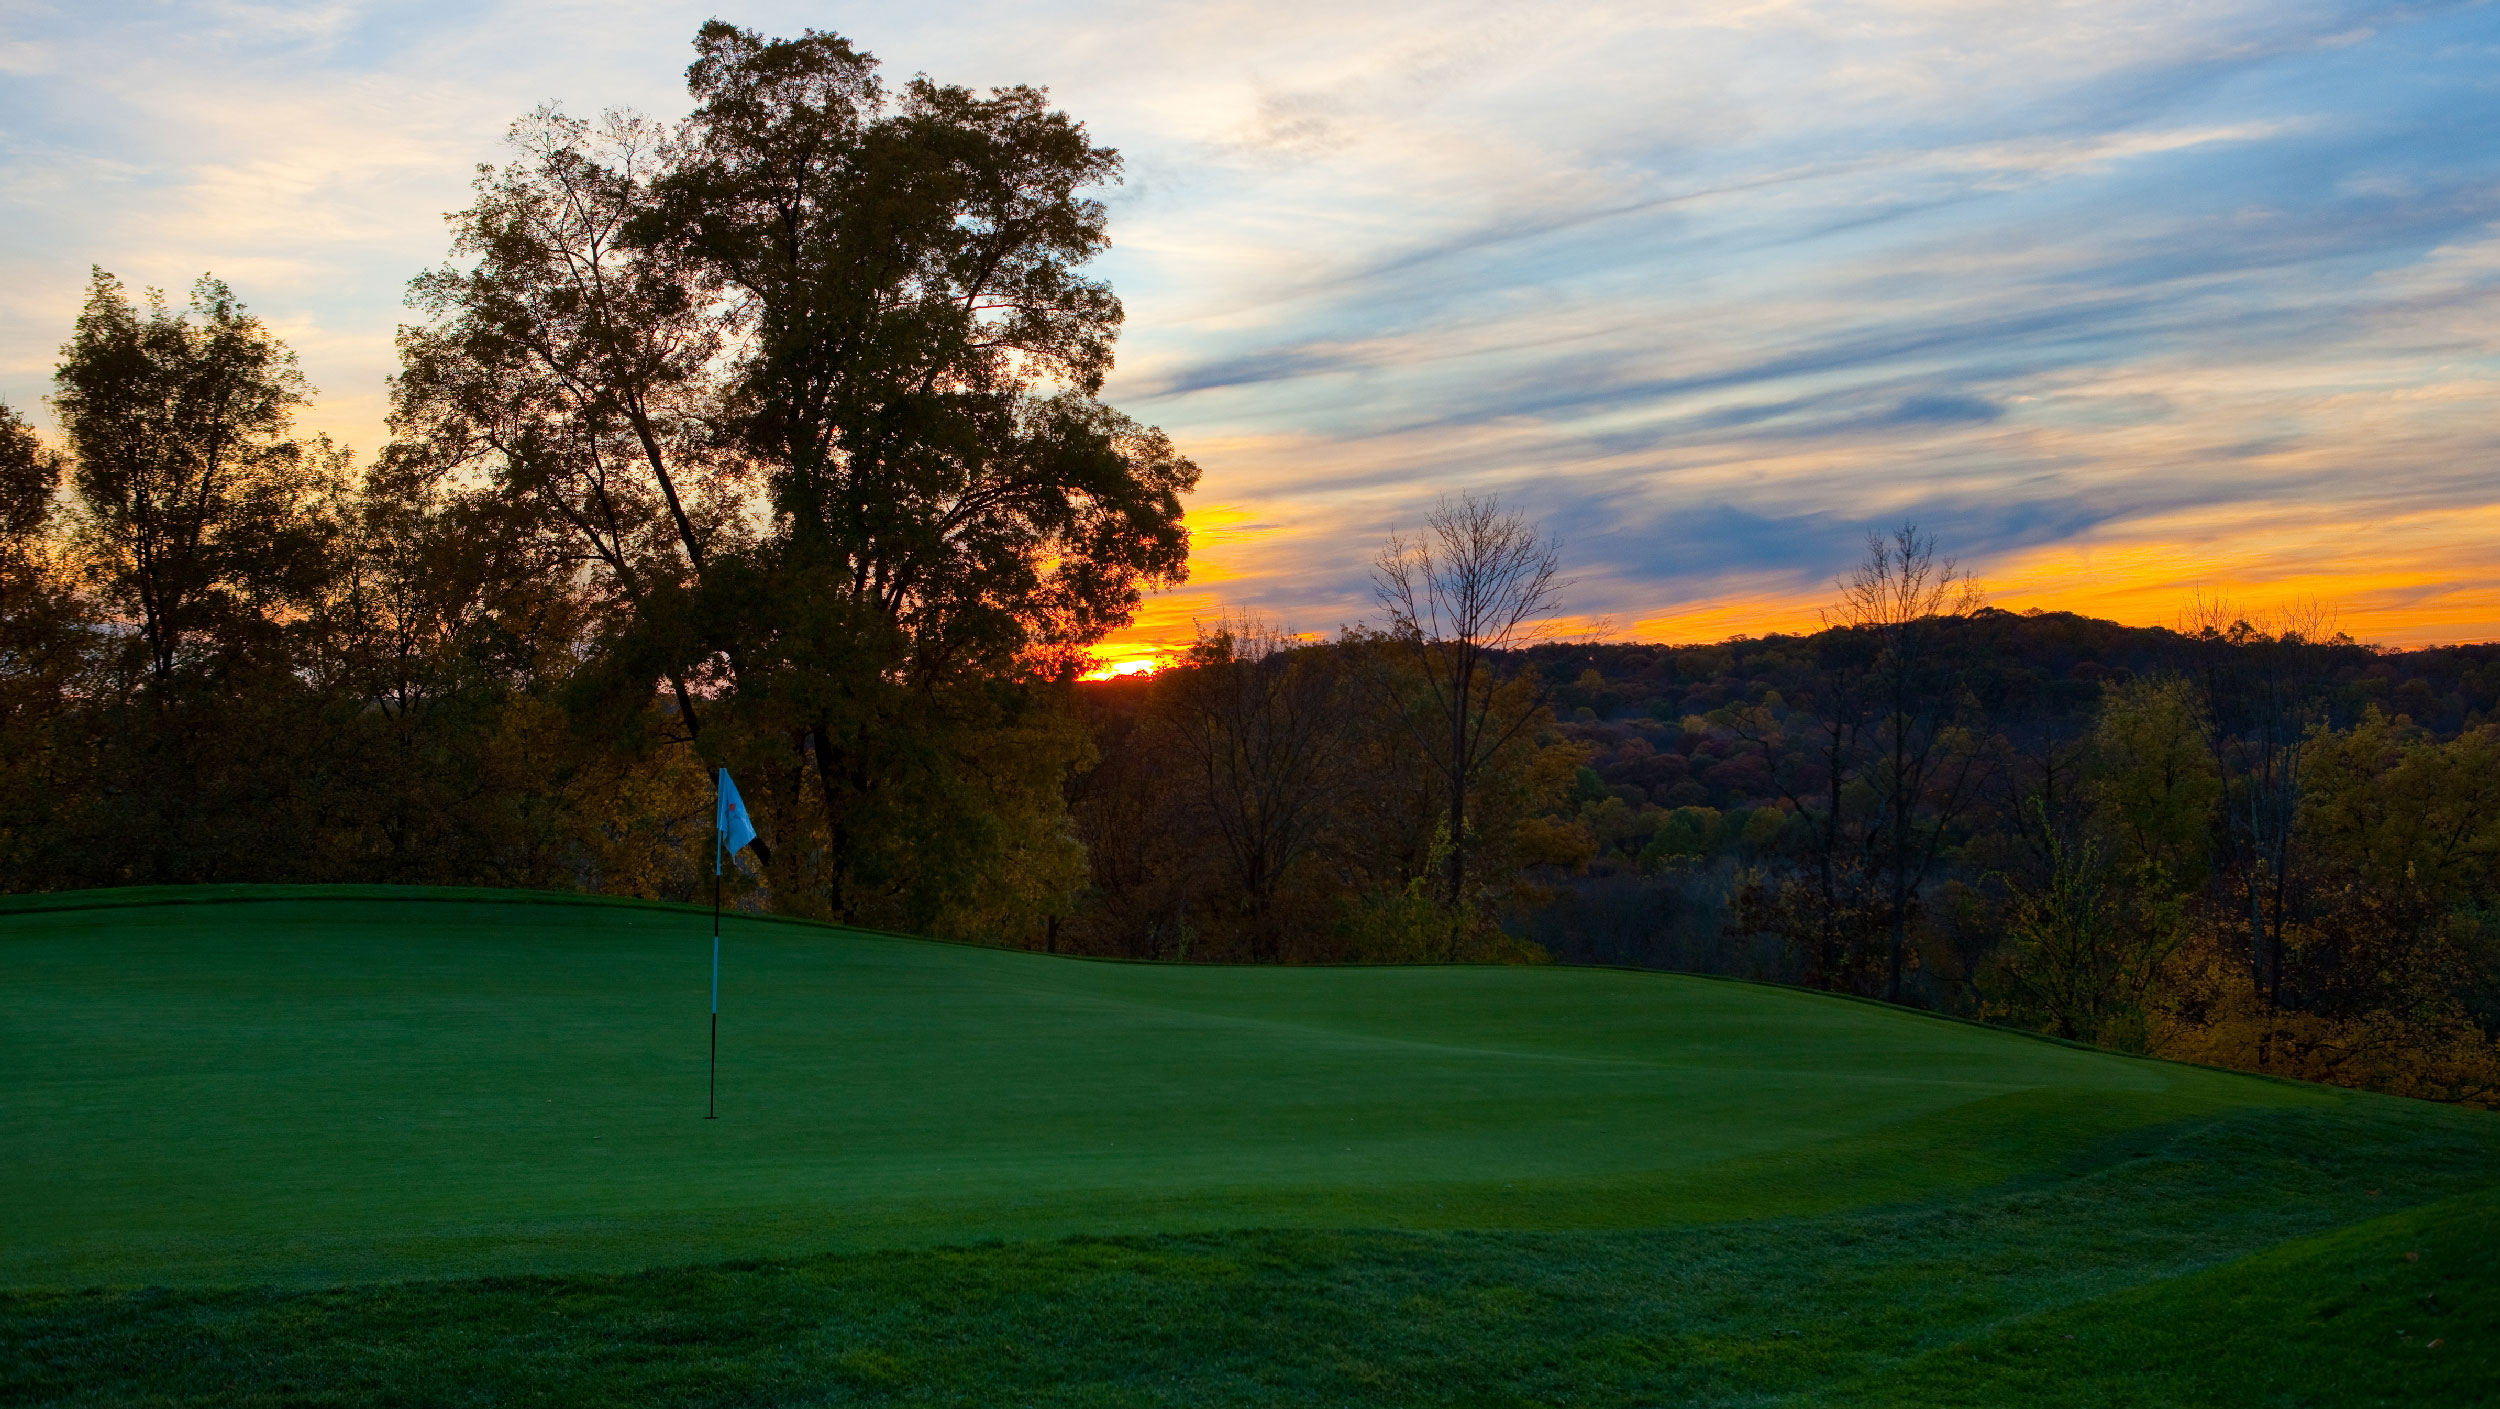 Sunset over the Rees Jones golf course, Westchester County